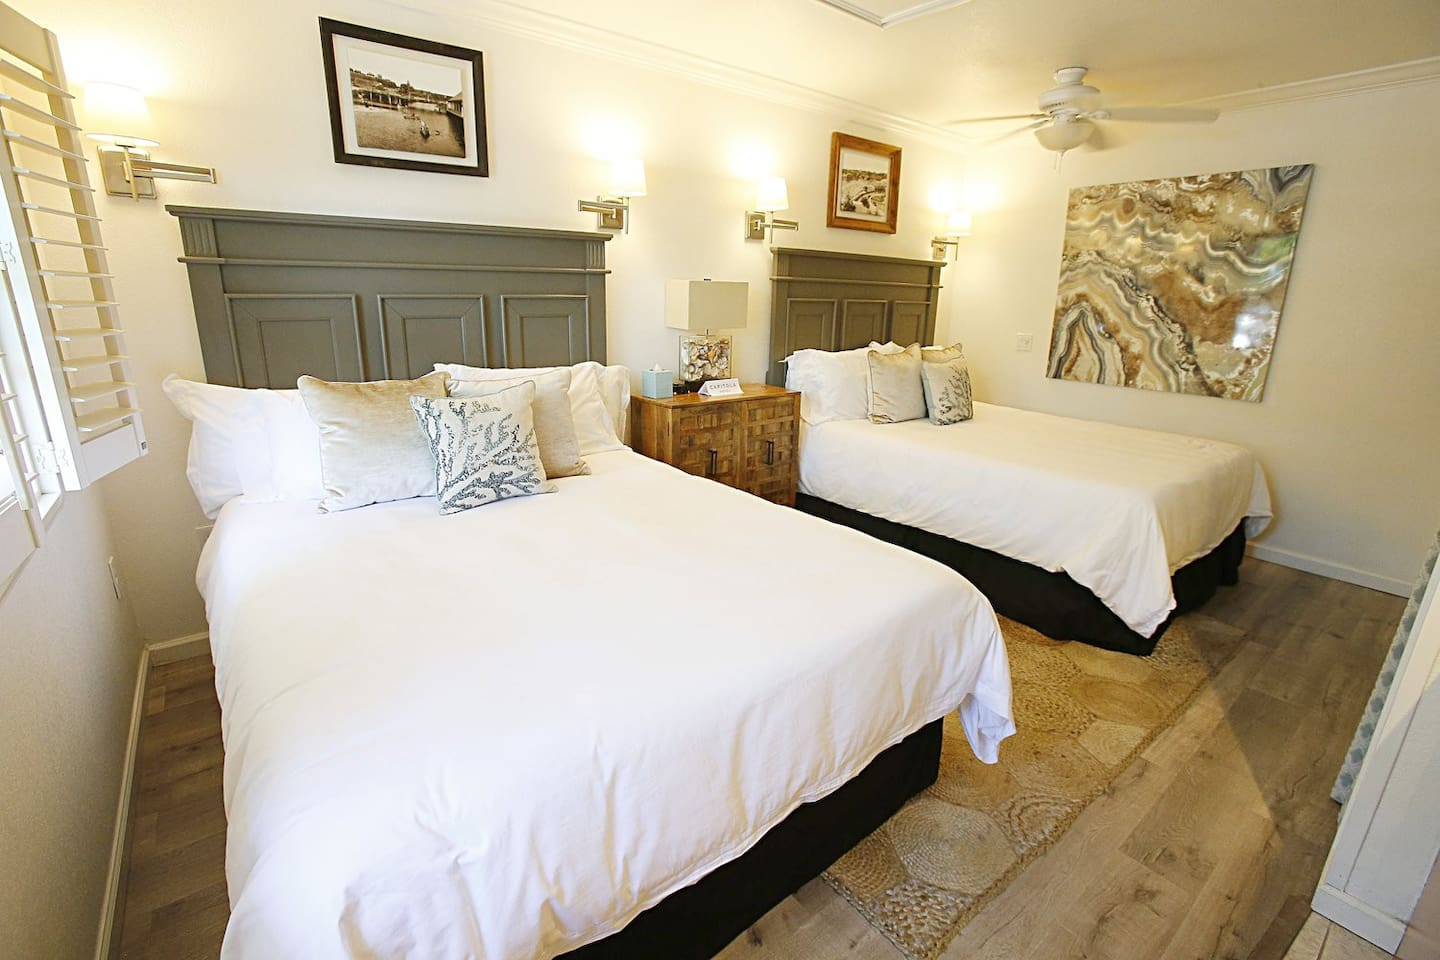 Capitola Hotel, The Grand Cayman room.